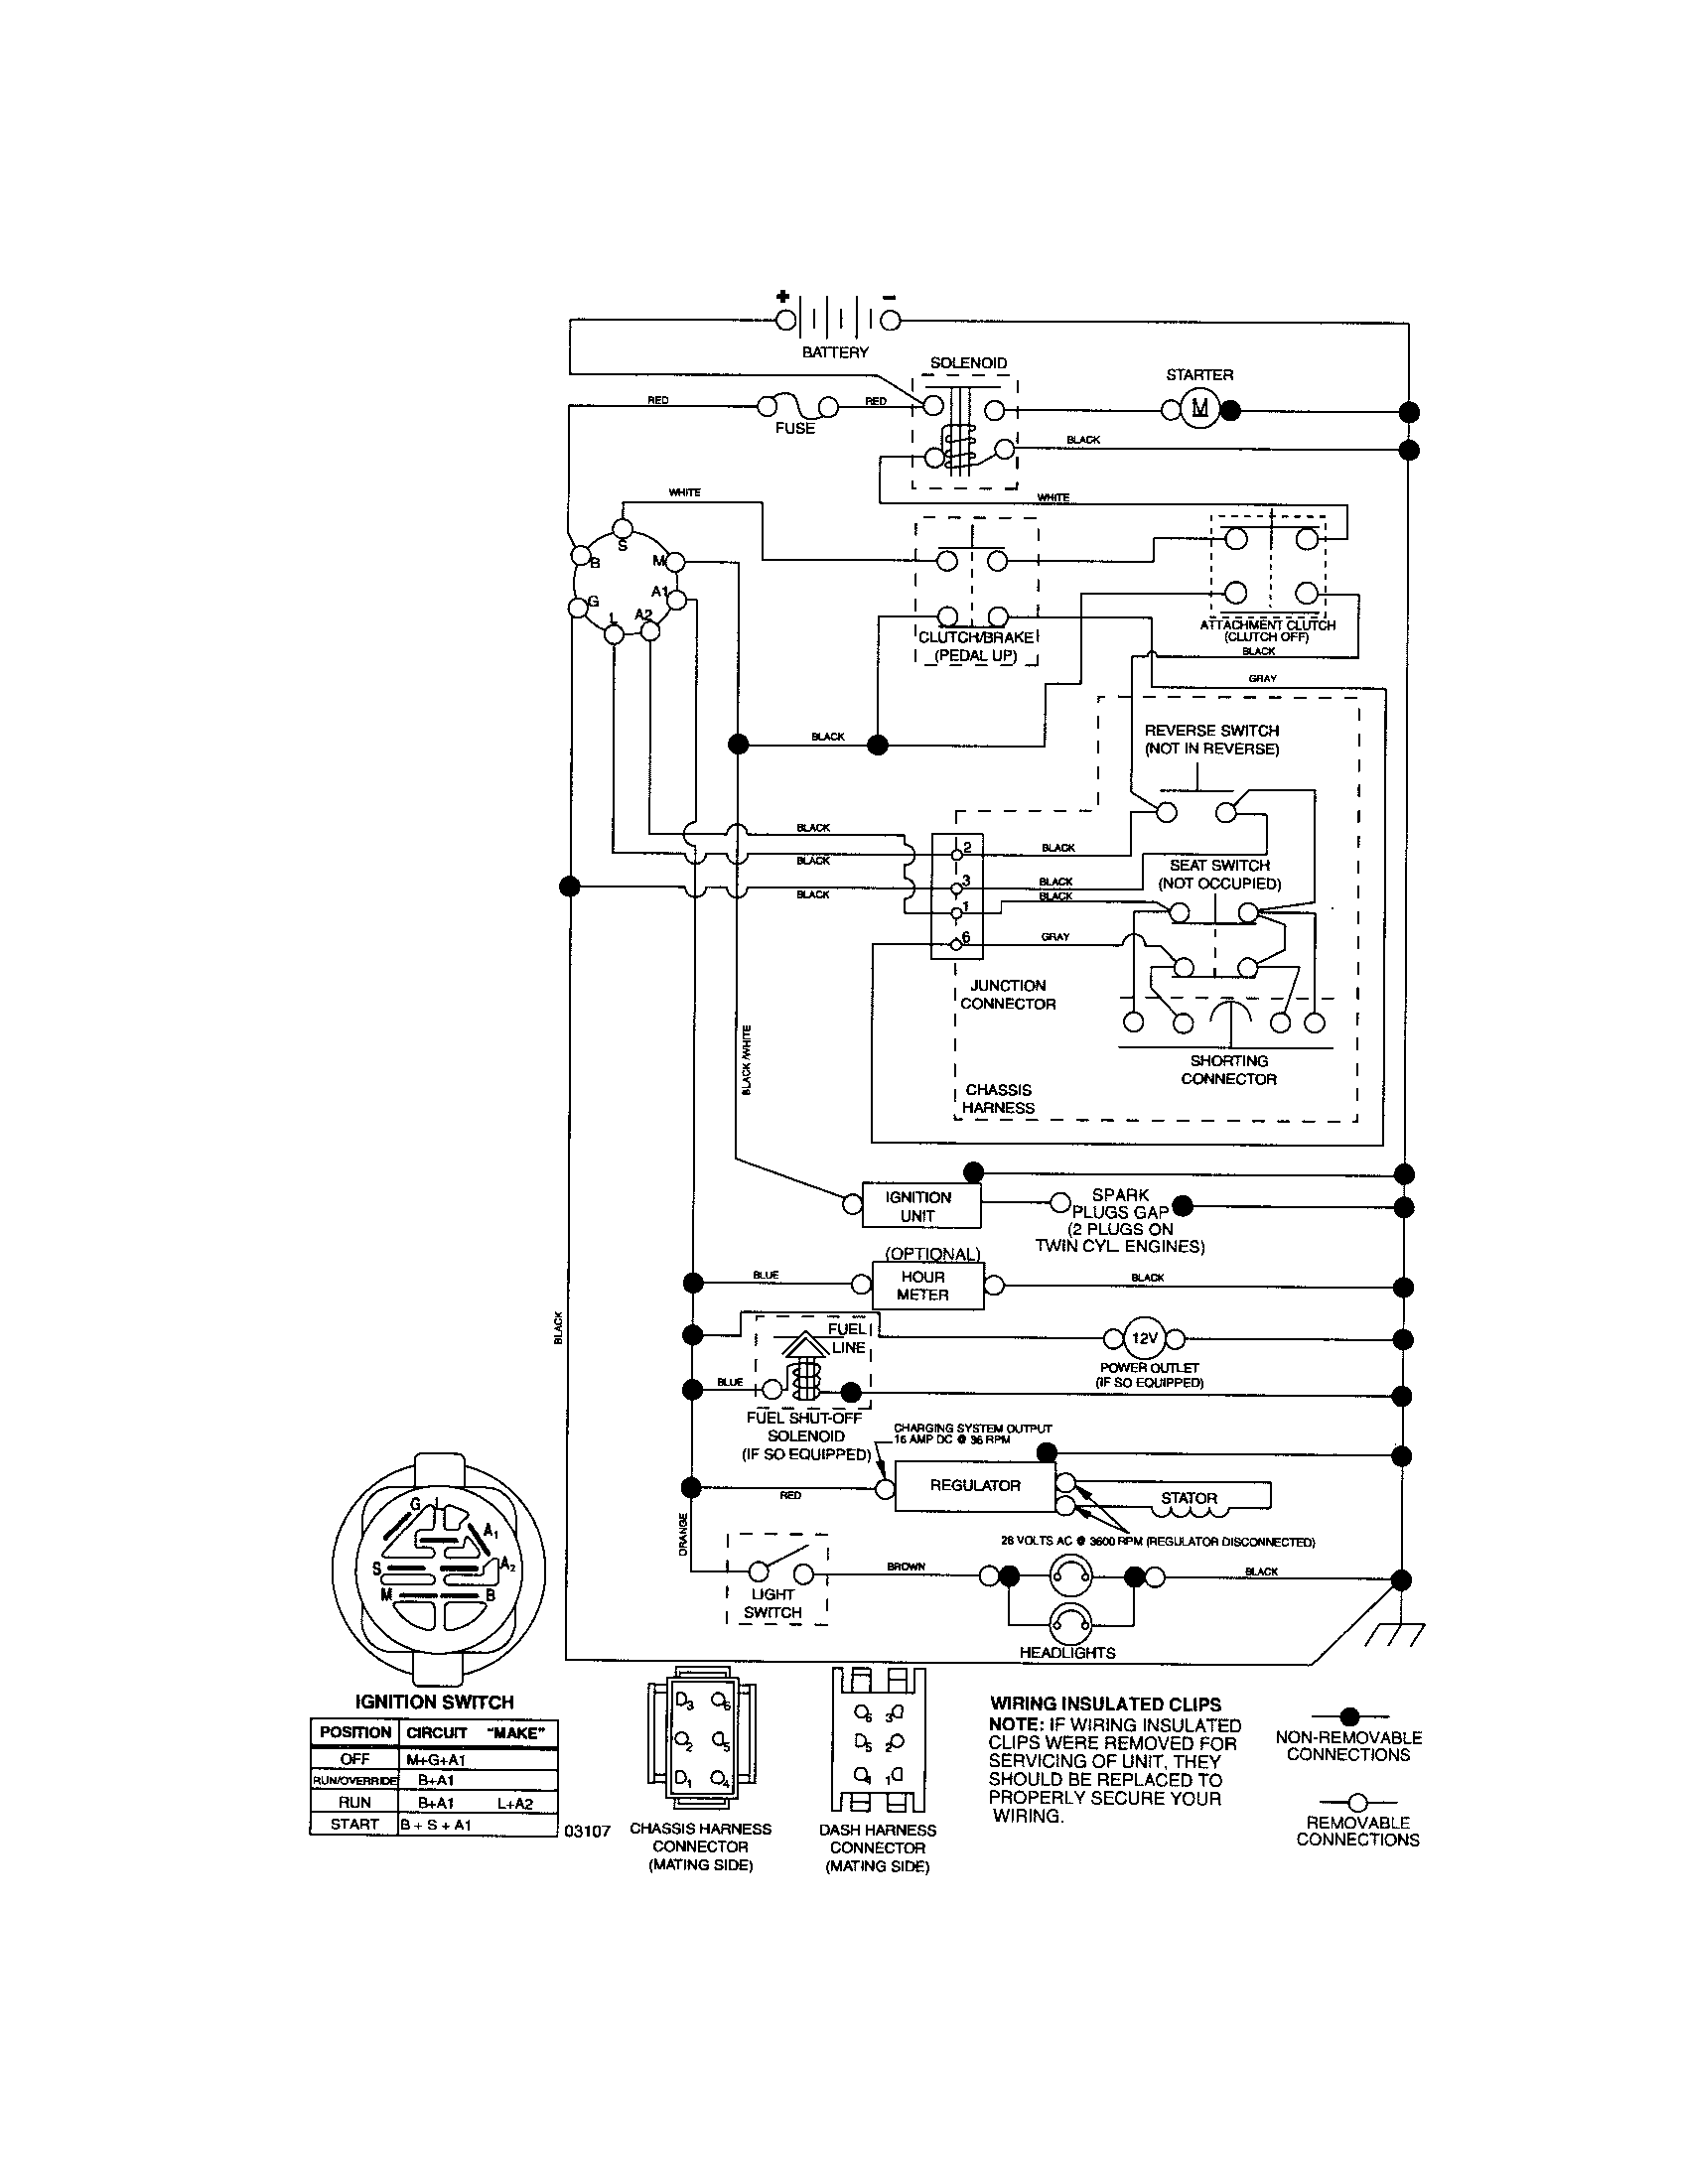 hight resolution of sears wiring diagrams wiring diagram detailed lawn tractor wiring diagram craftsman model 917287261 lawn tractor